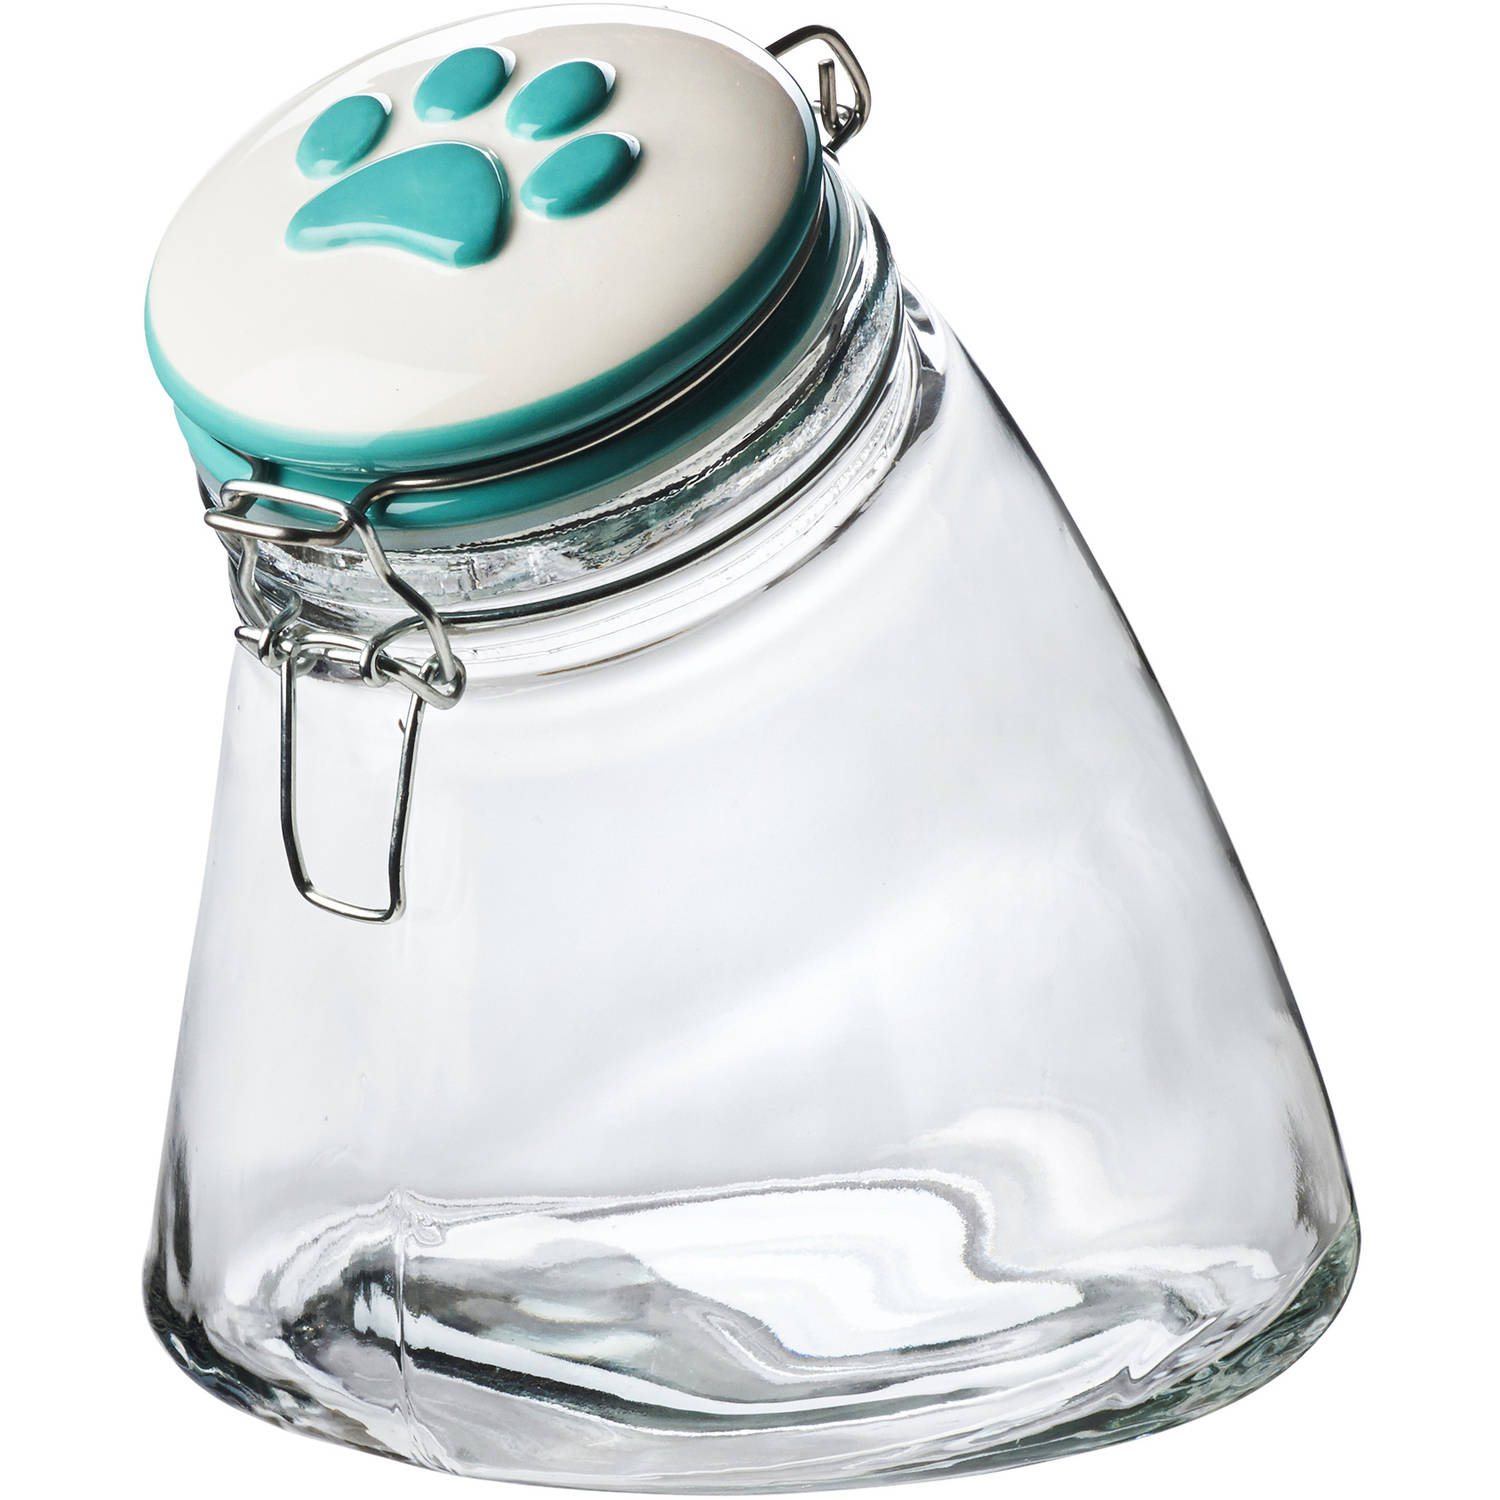 Paw Hermetic Preserving Jar, 56 oz, Turquoise